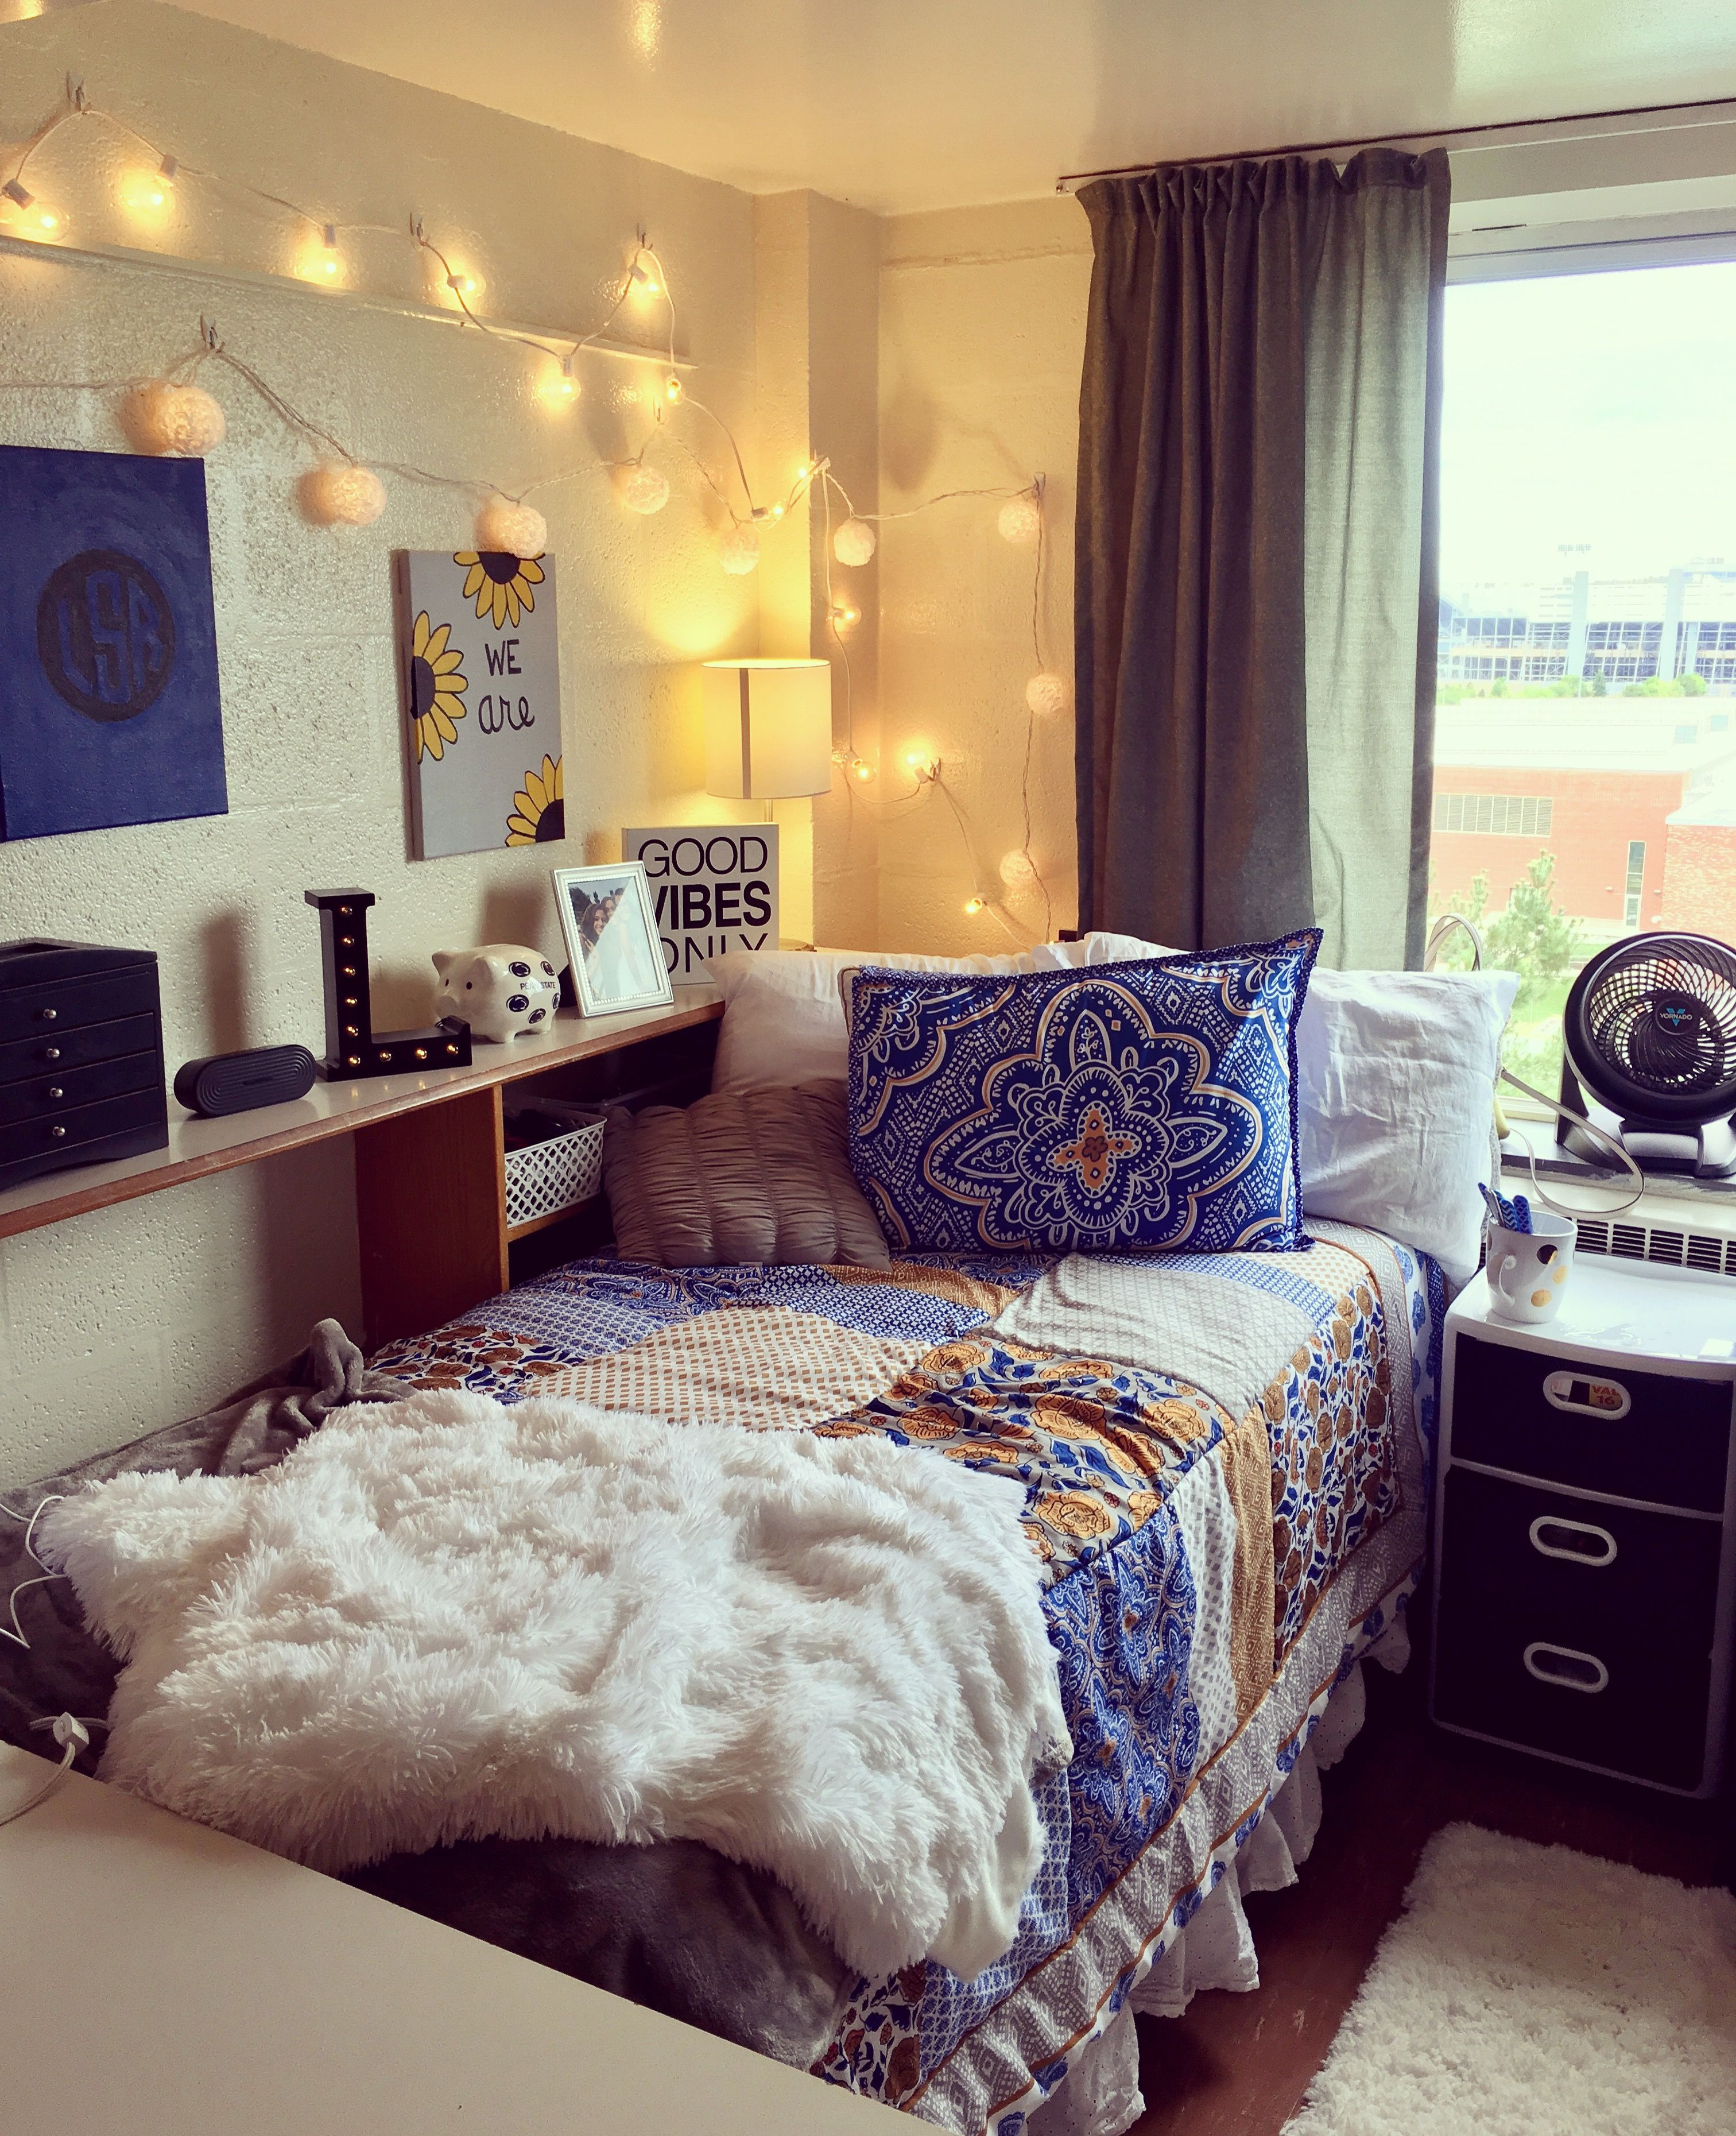 Penn State East Halls | college dorm | Pinterest | Hall, Dorm and ...